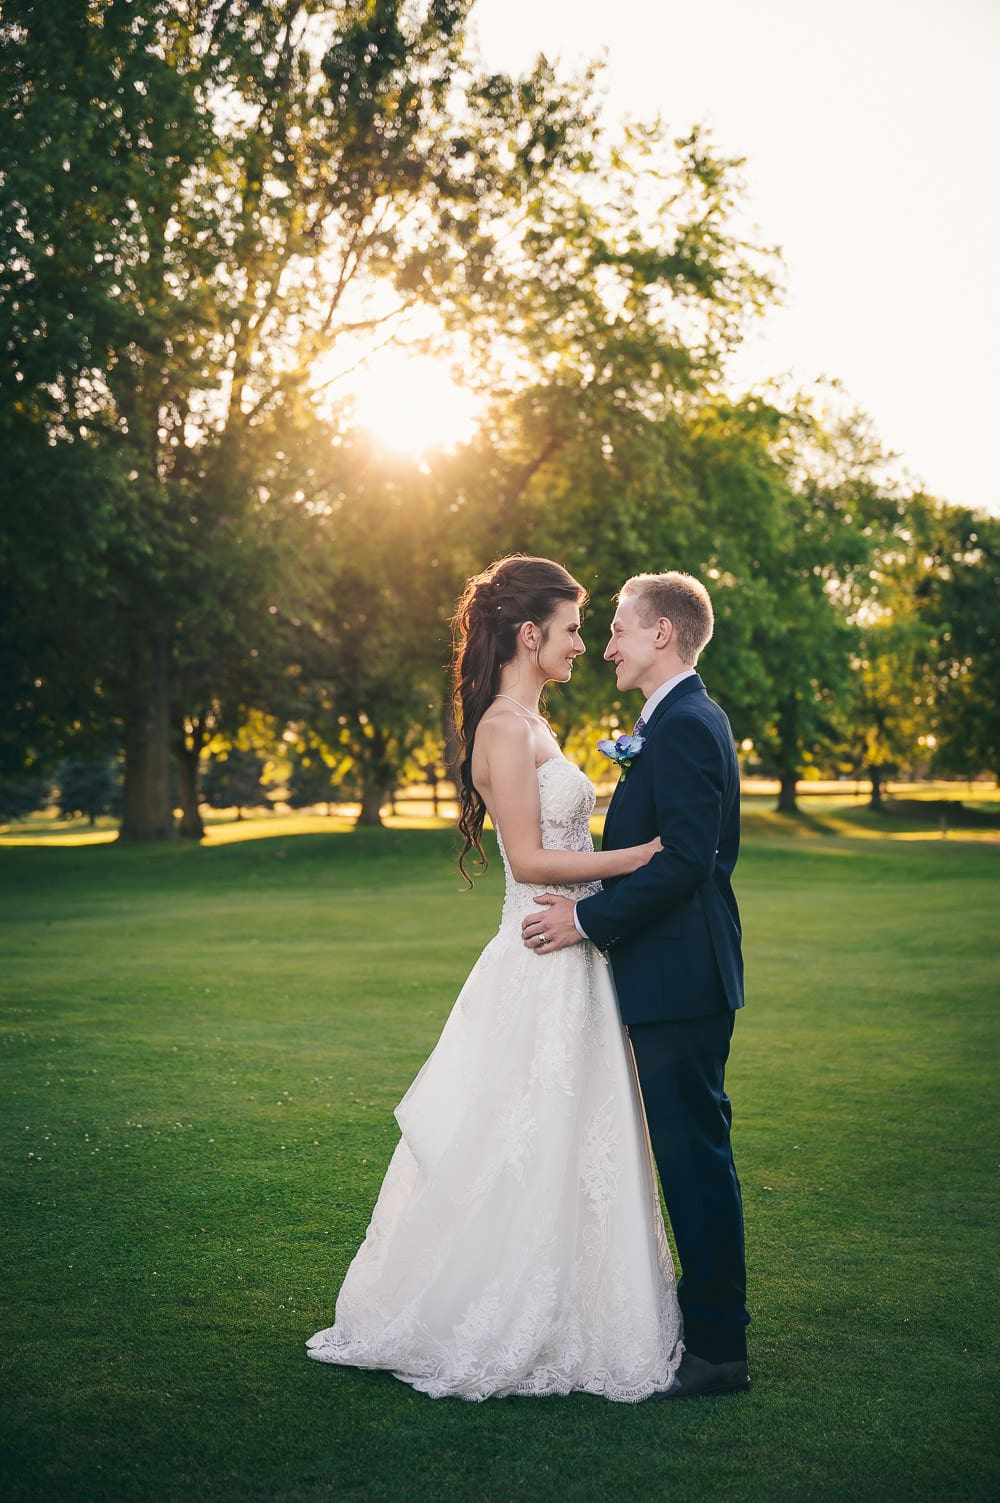 golden hour wedding photo on golf course in Mitchell Ontario